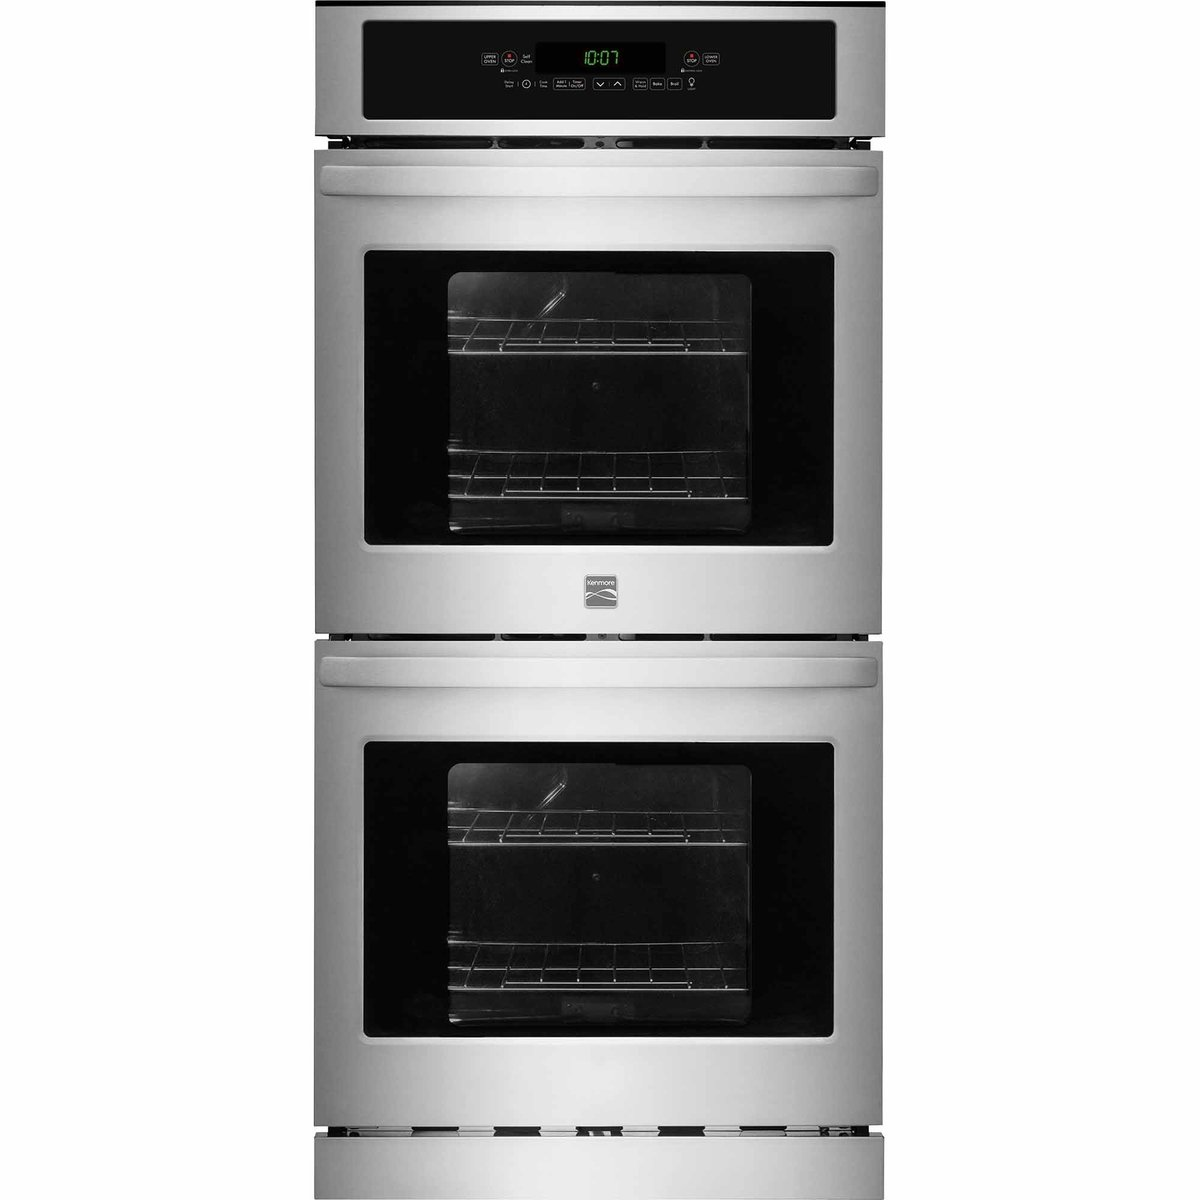 Kenmore 40253 24\' Electric Self-Clean Double Wall Oven, Stainless Steel Sears Home Services - water filters